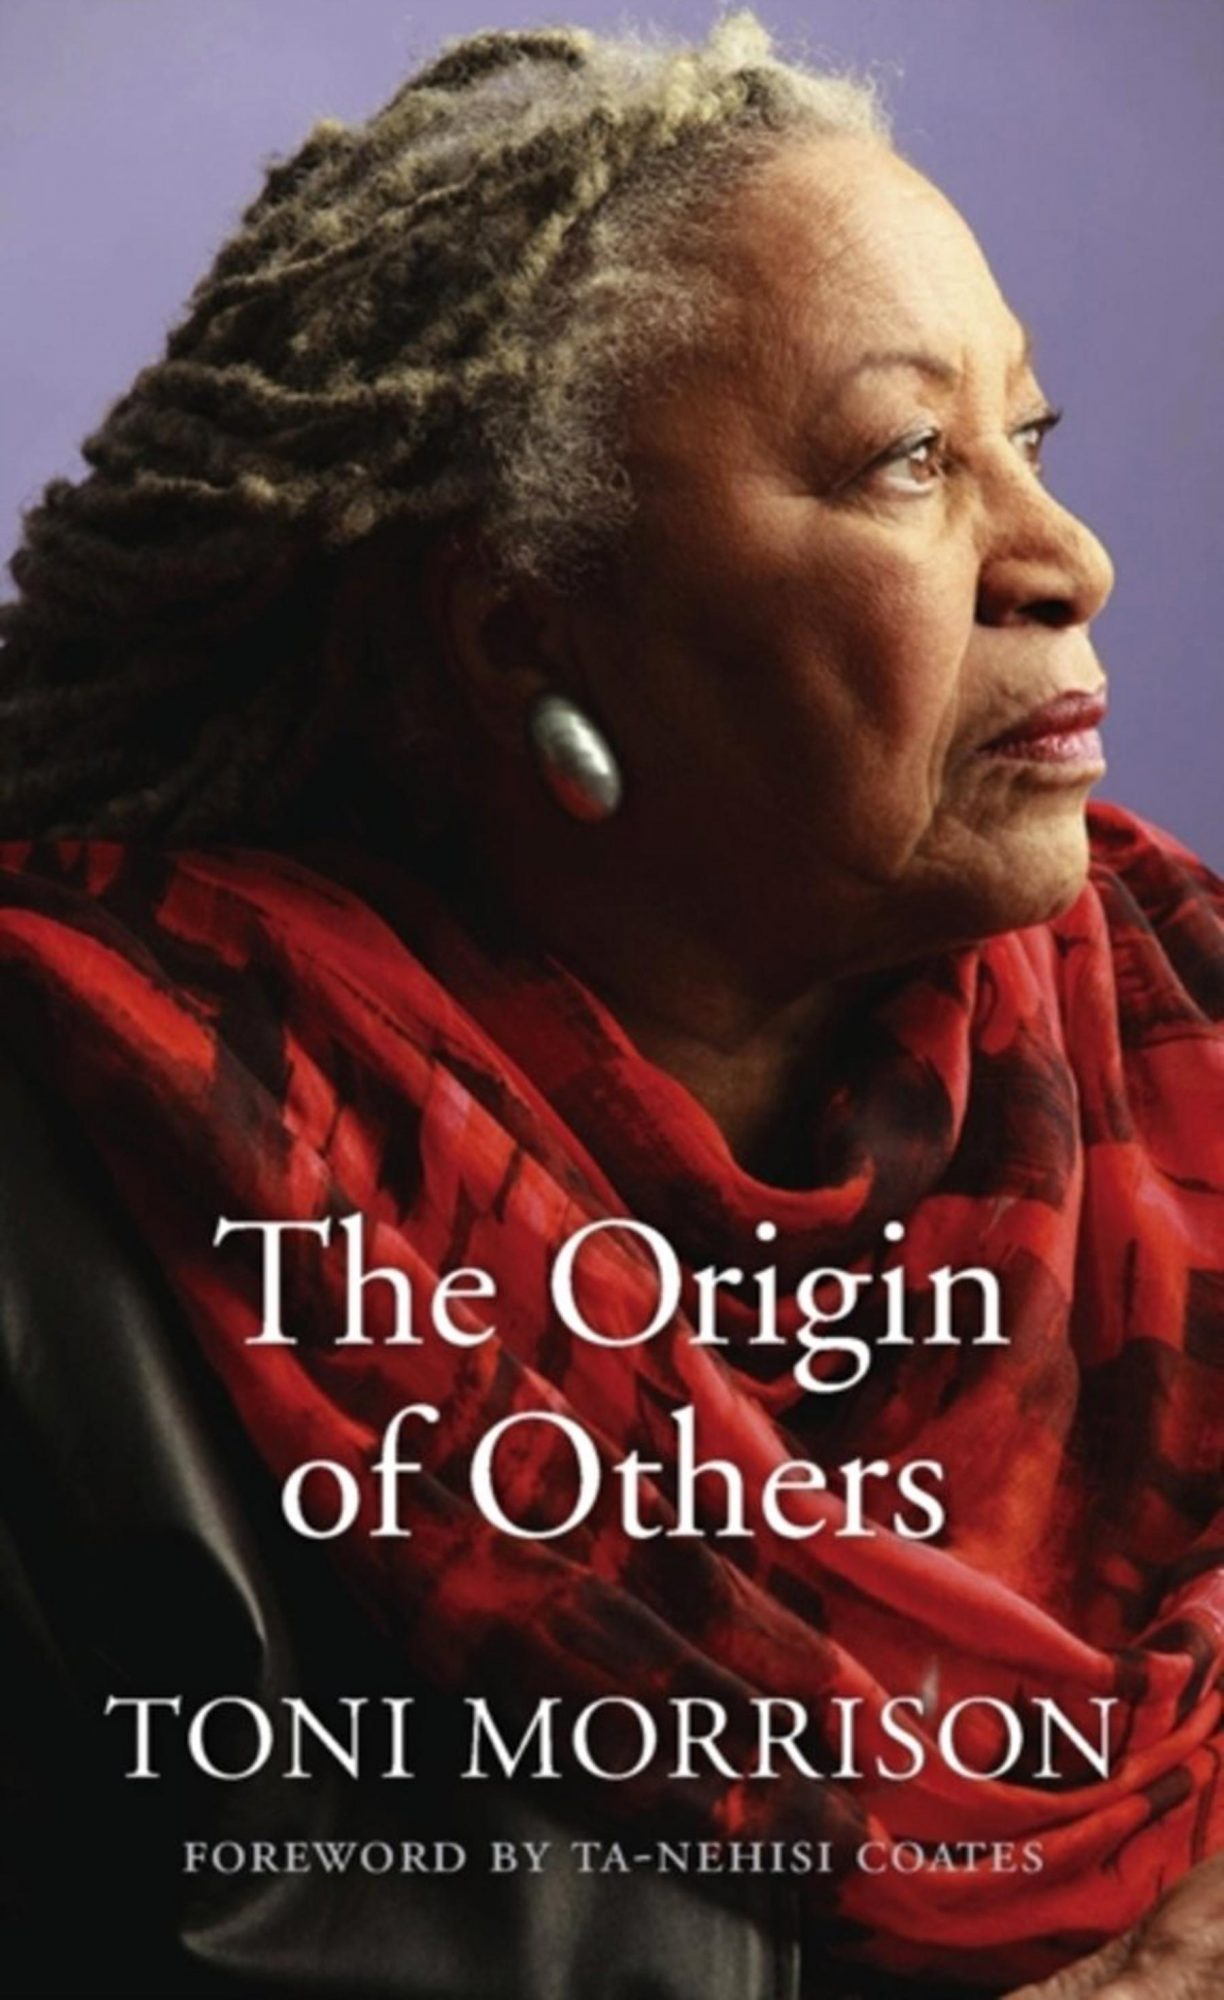 The Origine of Others by Toni MorrisonPublisher: Vintage